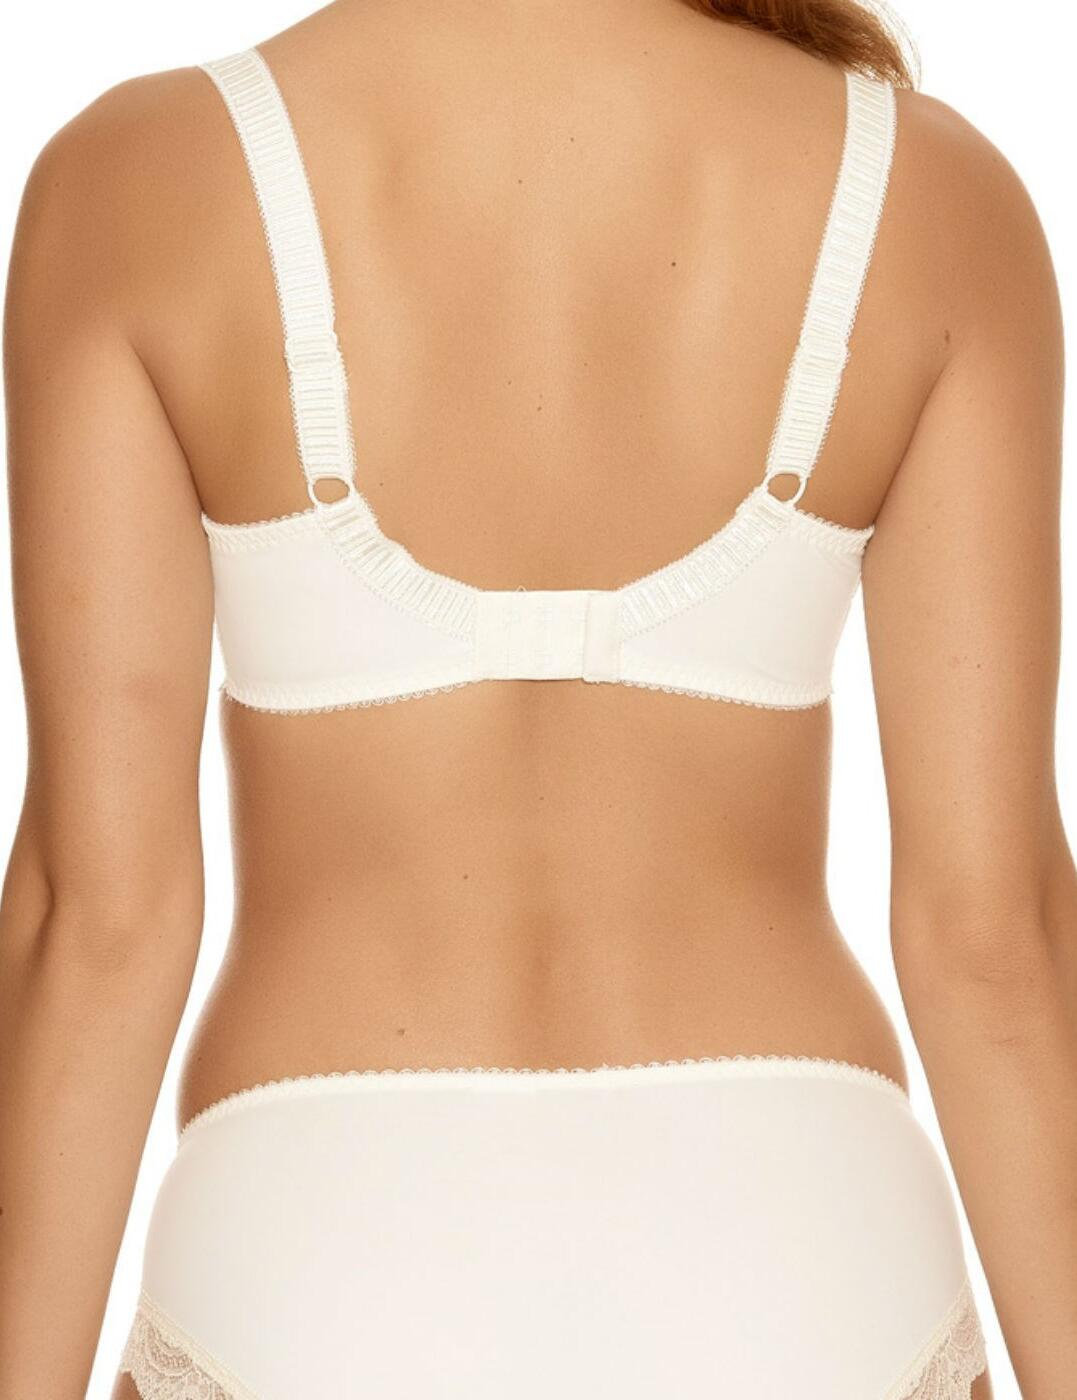 Fantasie Bra Mae Underwired Non Padded Side Support 9102 New Lingerie